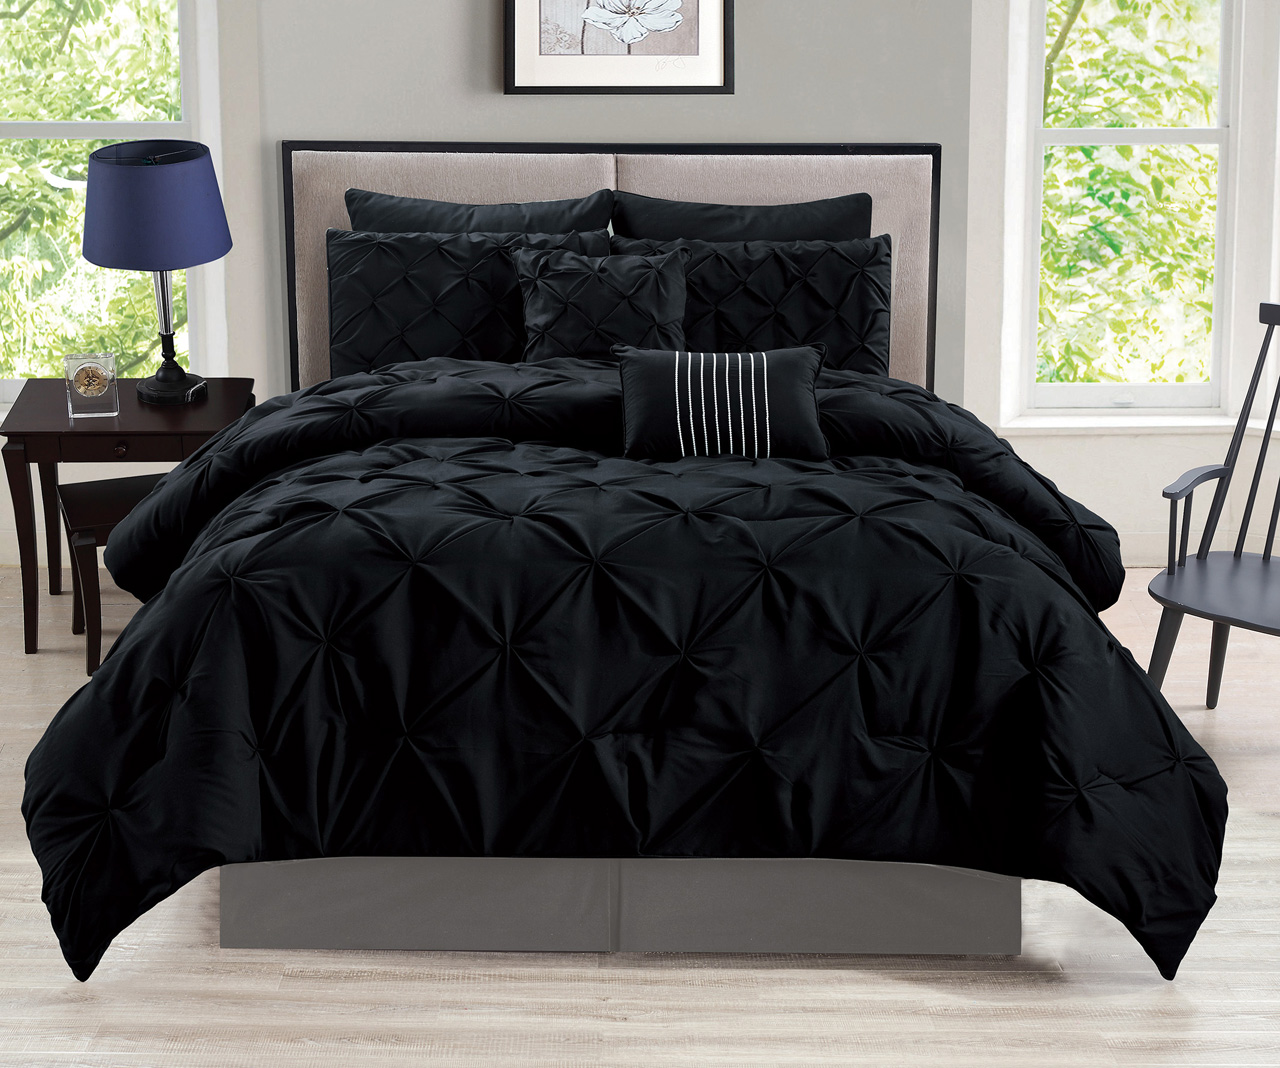 Lovely All Black Bedding Sets Queen